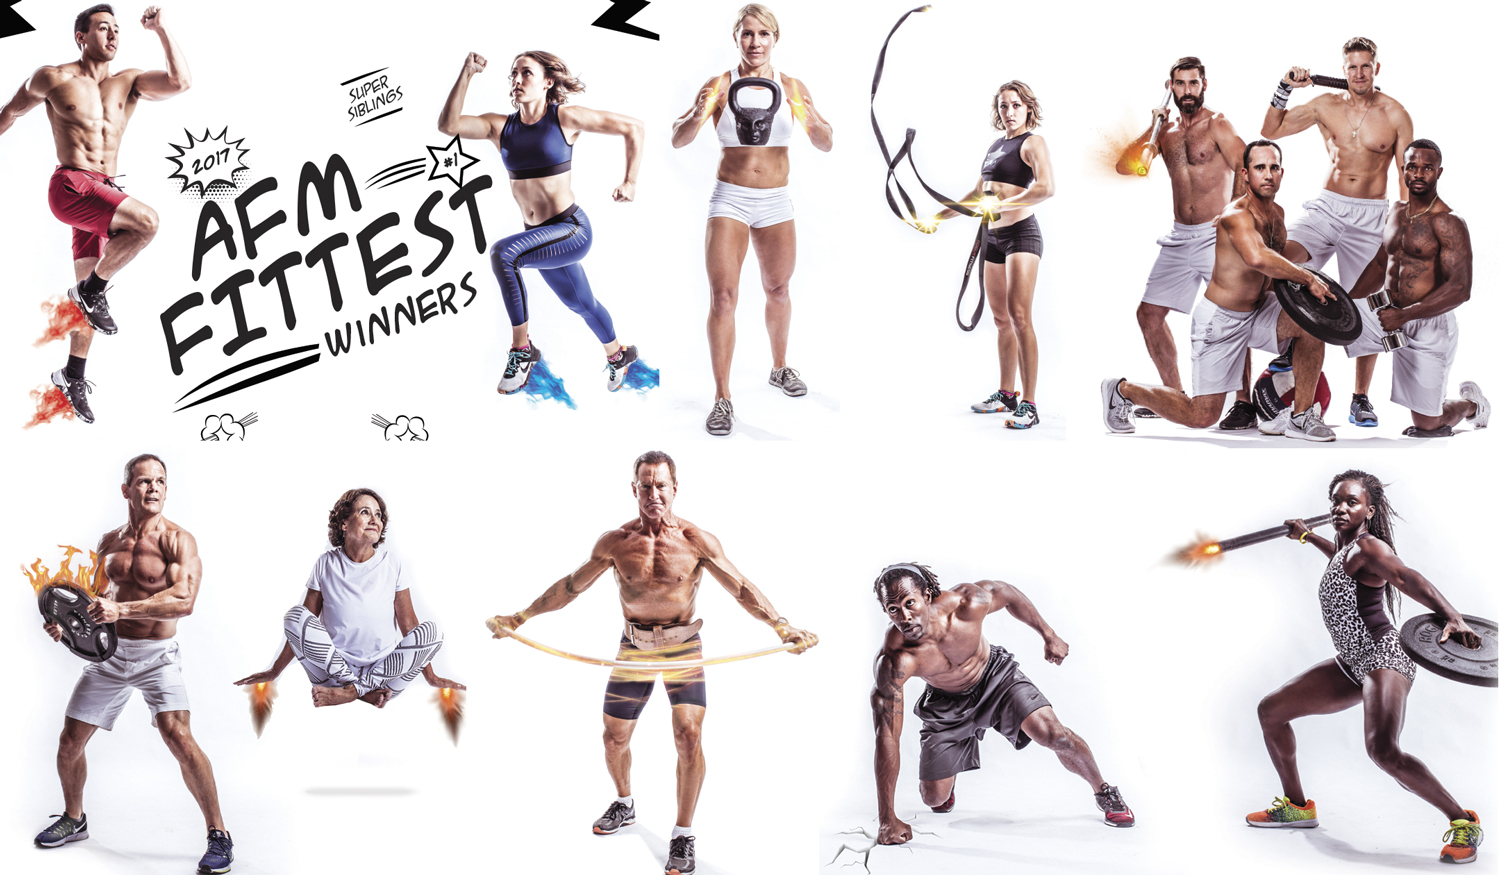 Some of the athletes we photographed.